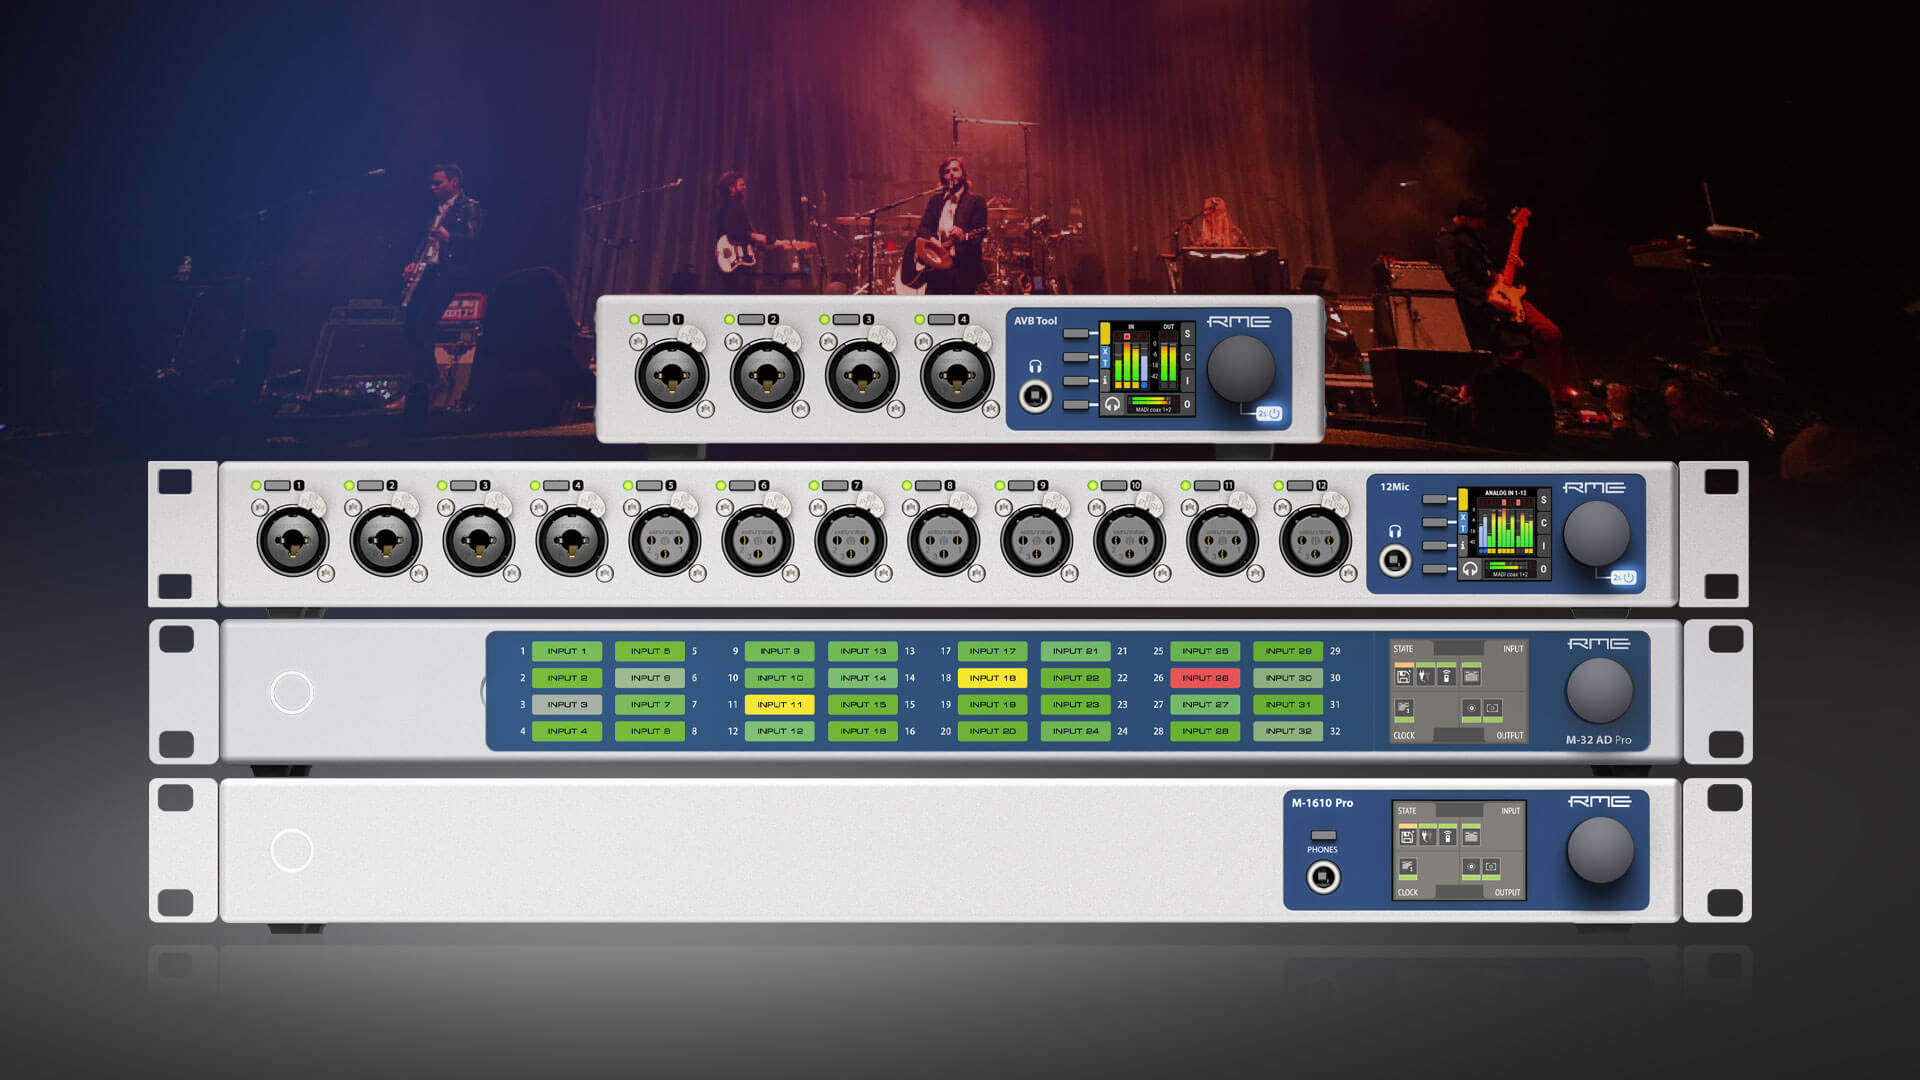 RME AVB Network Audio Devices